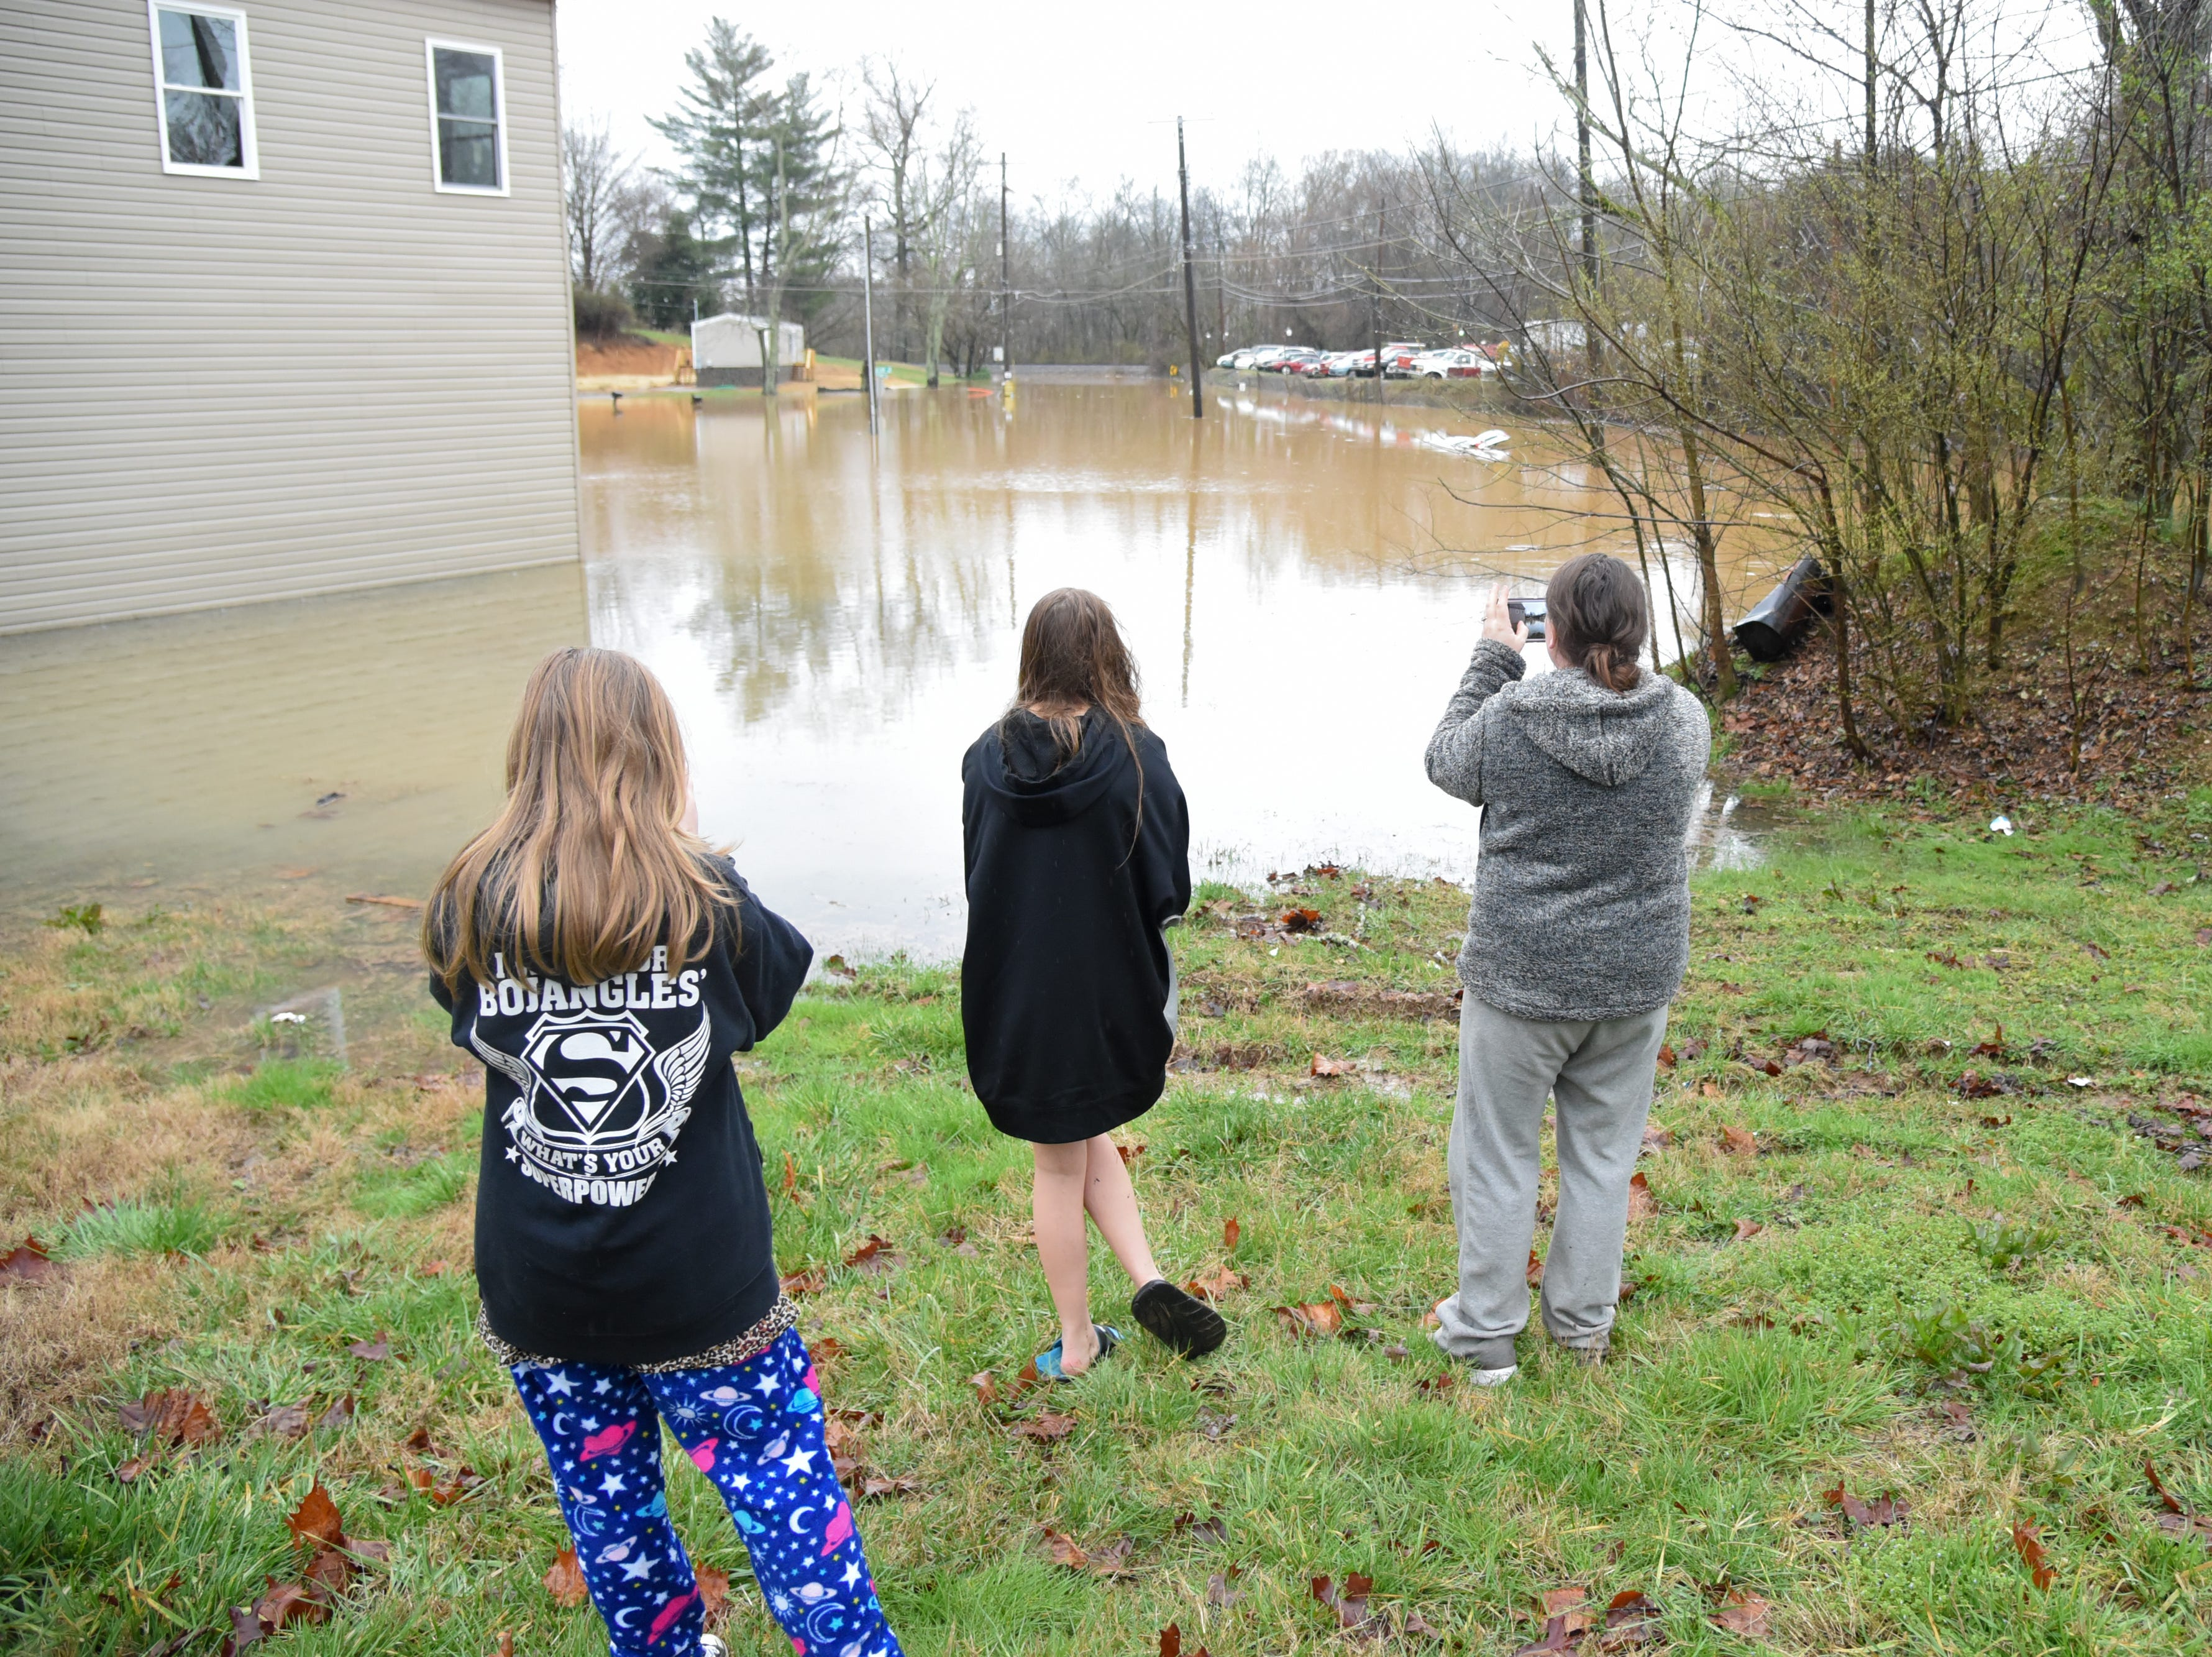 Kristyn Lane and her daughters Rachel Lane and Kaitlyn Wells of Powell observe flooding in Powell Saturday Feb. 23, 2019. The Knoxville area could see between 2 and 3 inches of rain through the weekend.